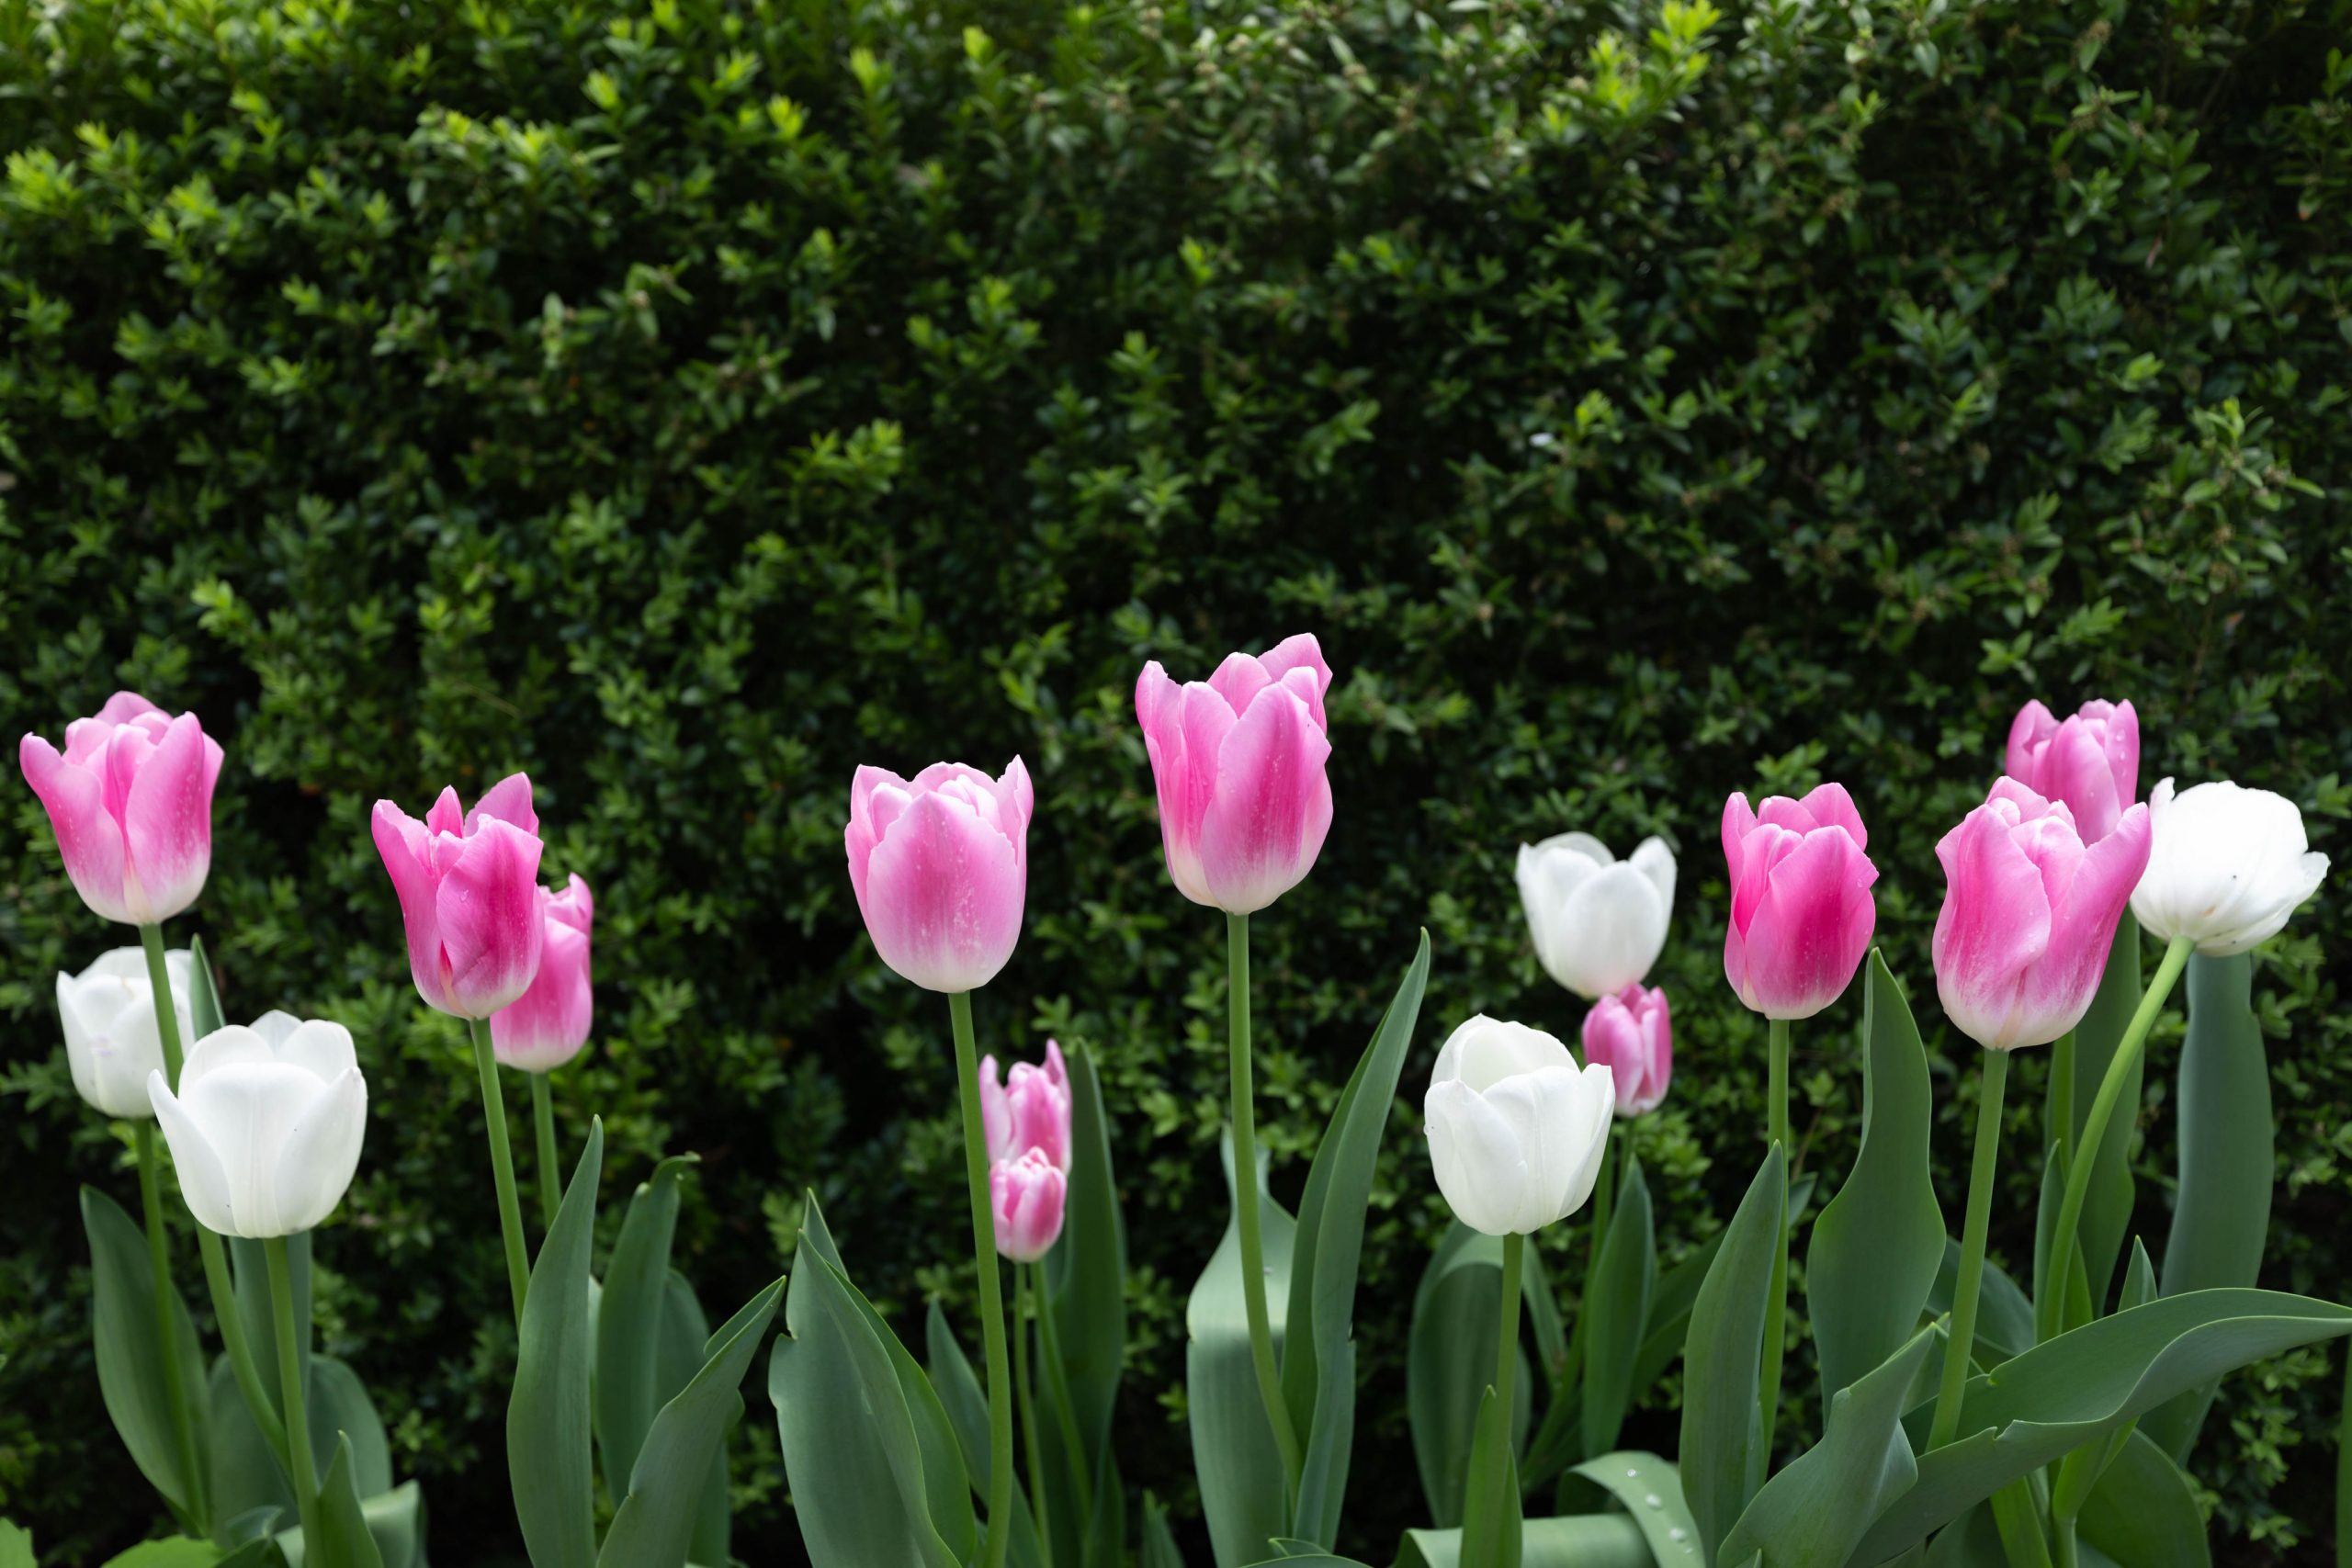 Tulips at Hillwood Estate, Museum & Gardens in Washington, D.C. by Luxury Travel Writer and Photographer Annie Fairfax